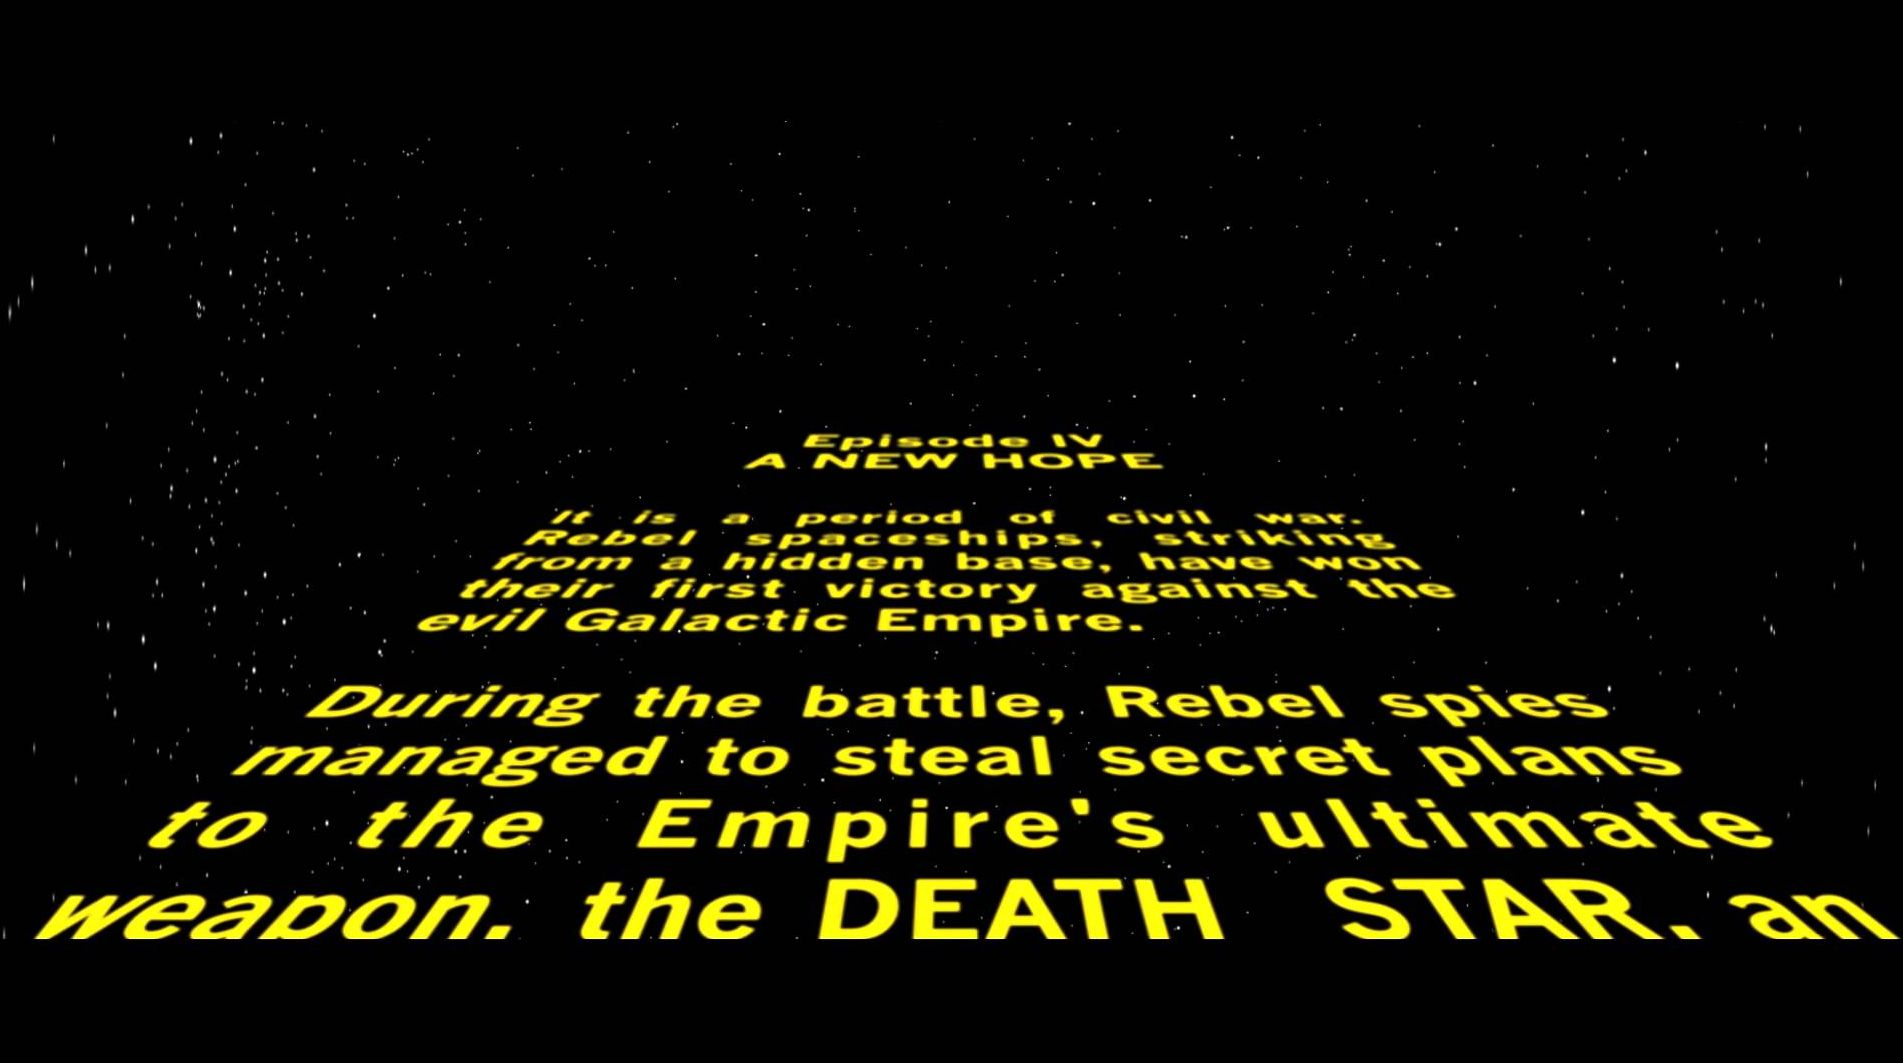 Star Wars Episode Iv Opening Crawl Cultjer